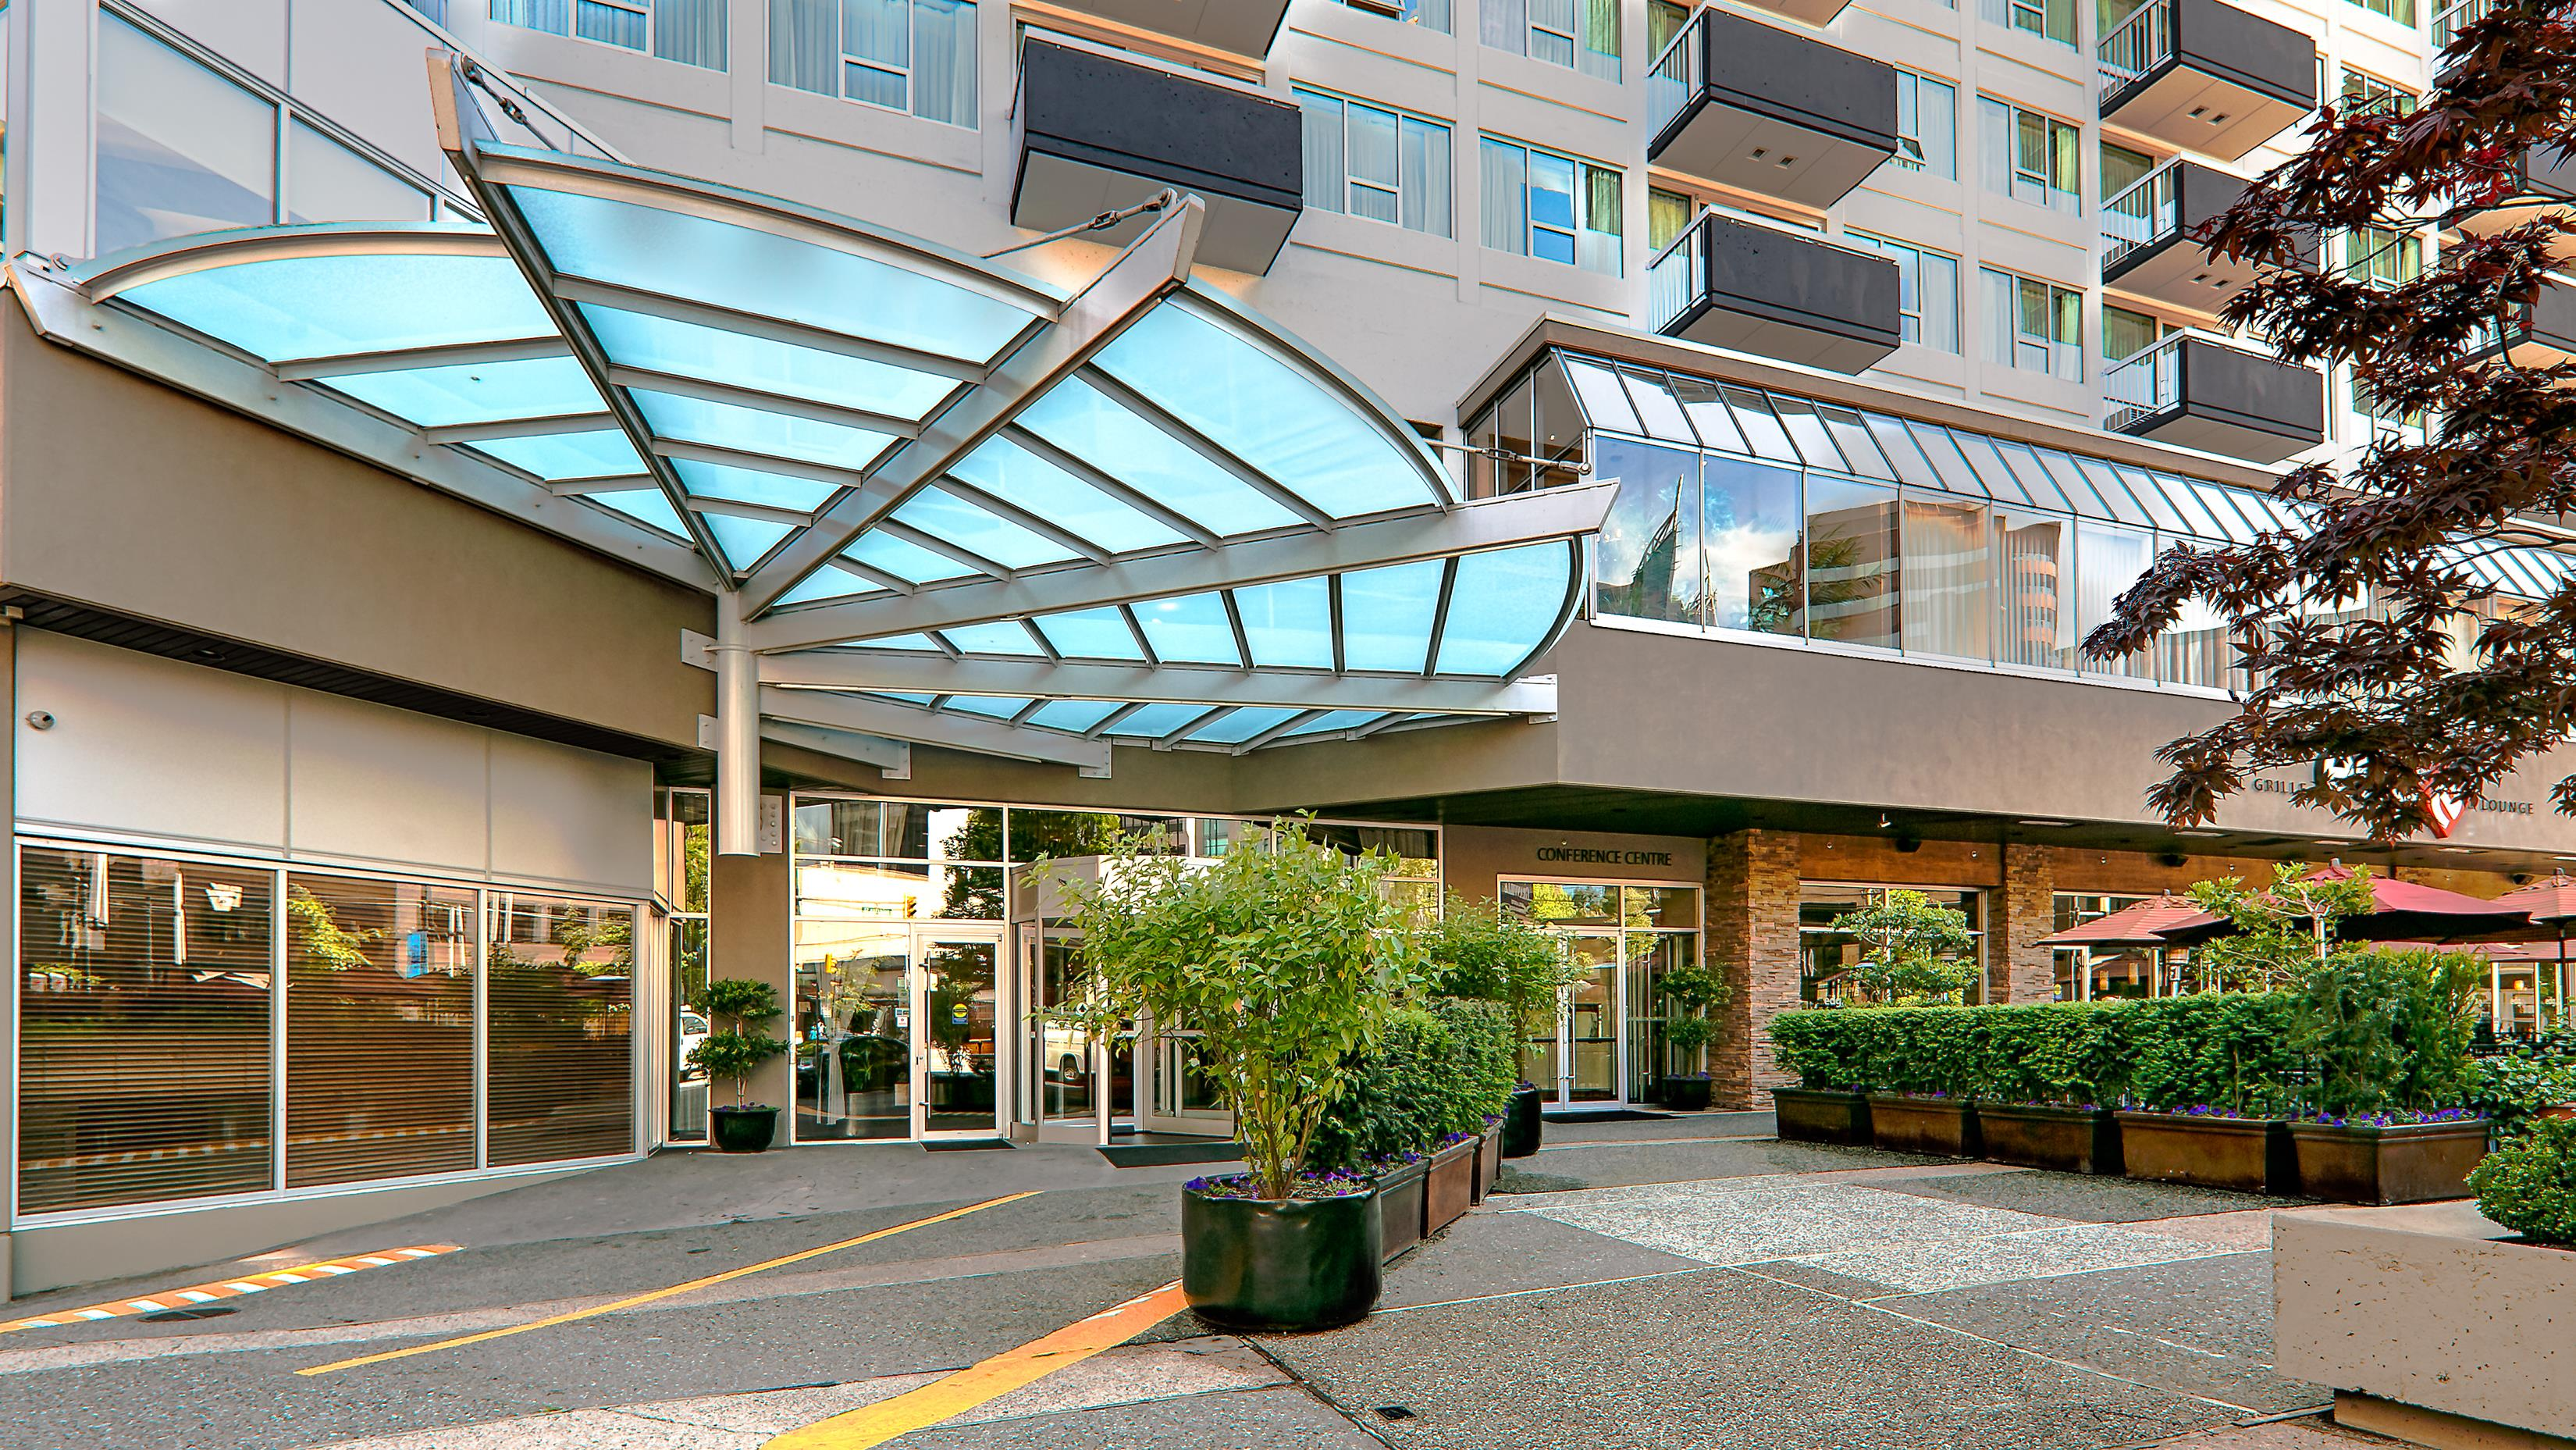 Best Western Plus Chateau Granville Hotel & Suites & Conference Ctr. in Vancouver: Hotel Exterior